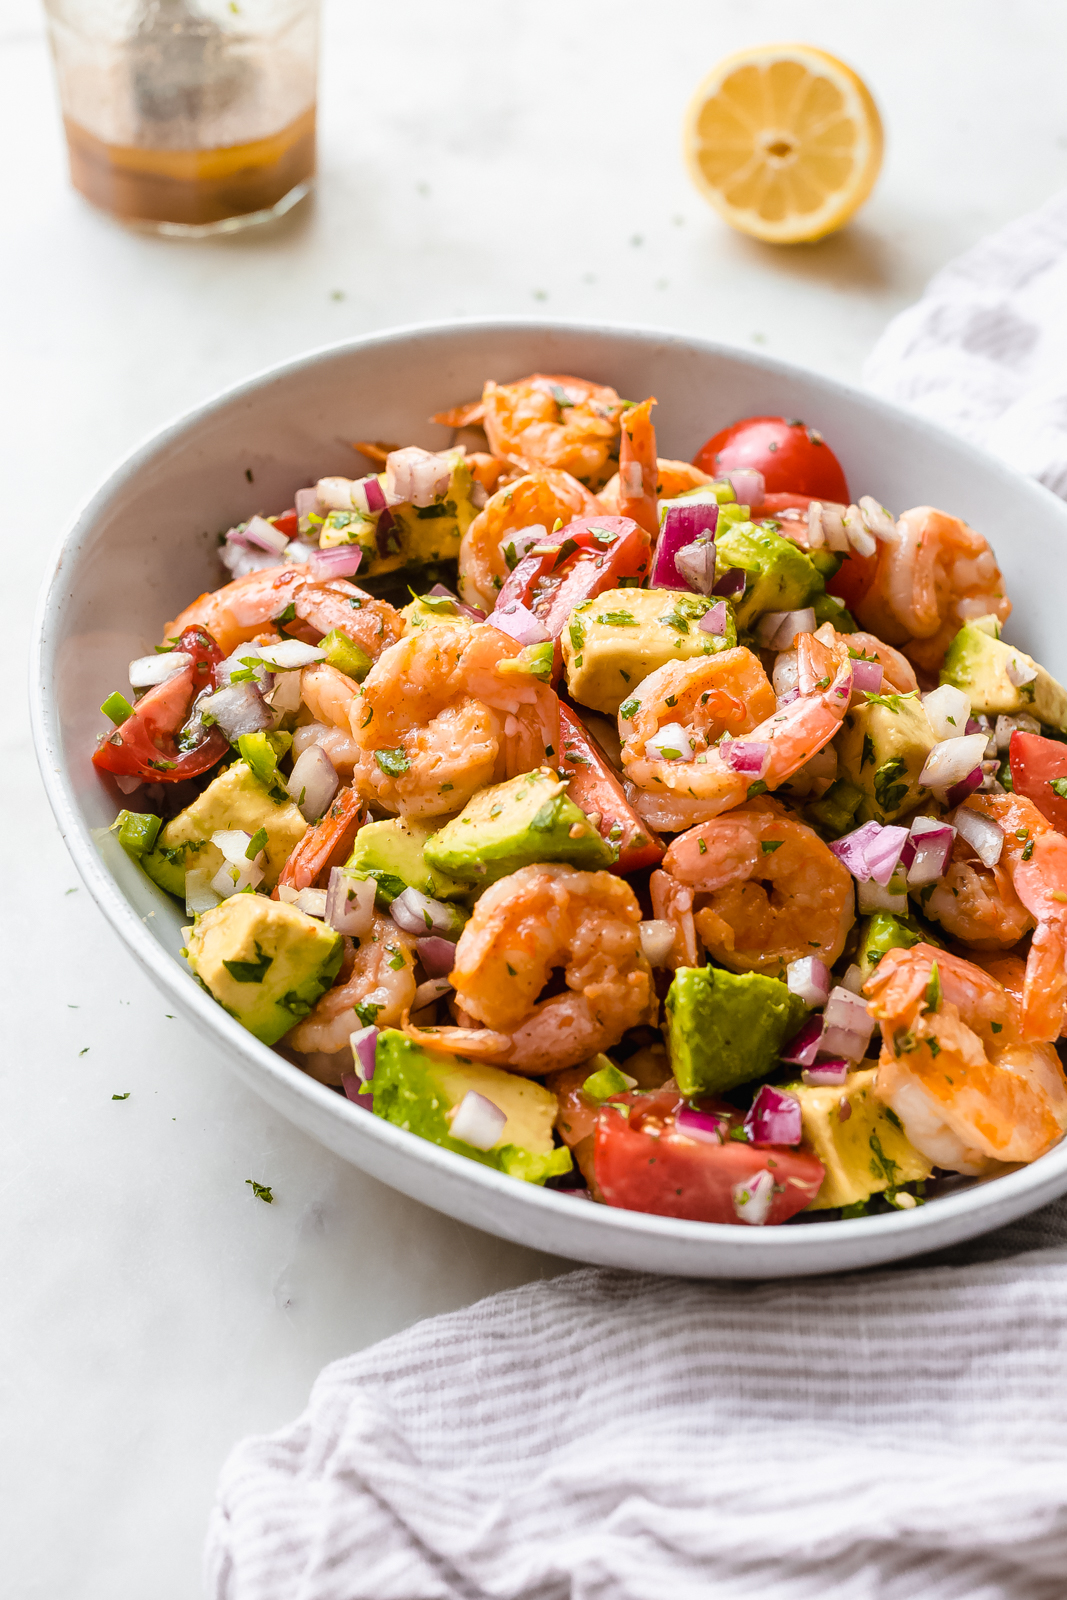 angled view of shrimp salad with avocados dressed in lemon dressing